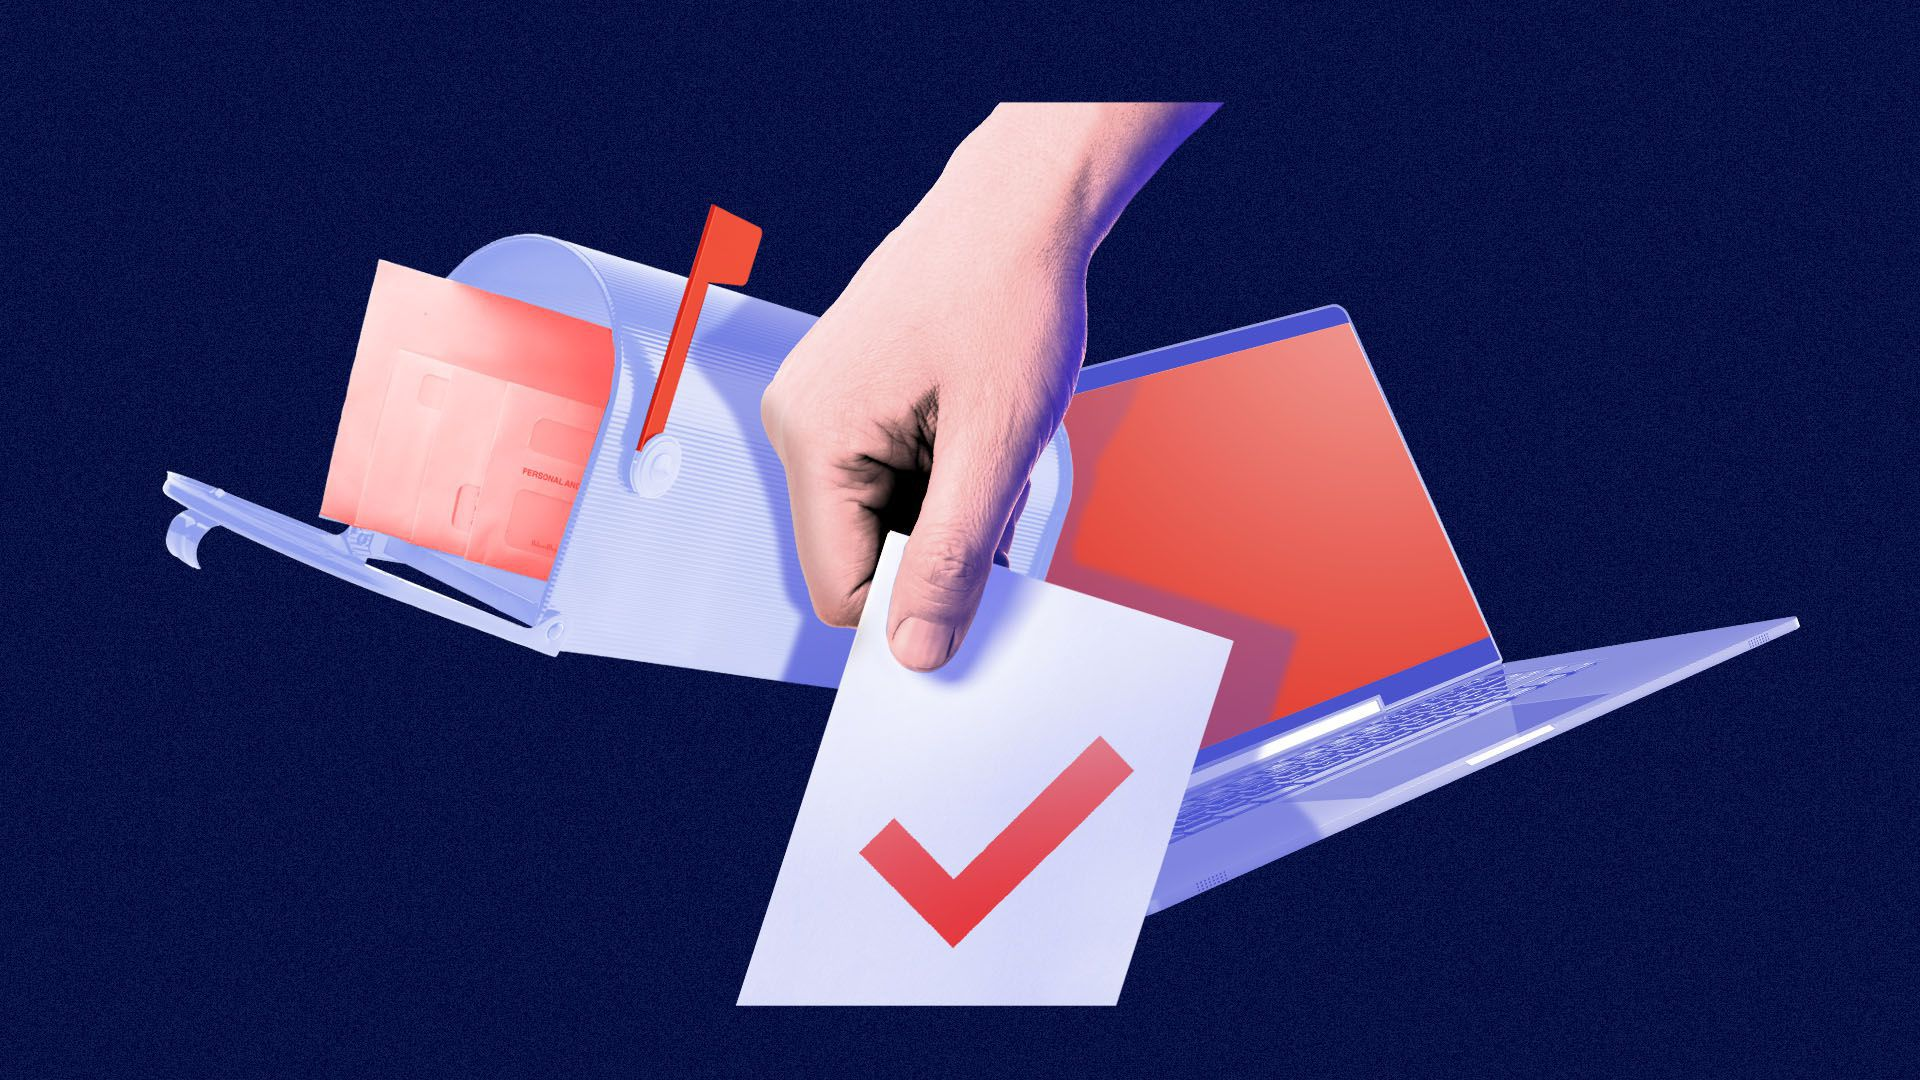 Illustrated collage of a hand casting a ballot with a mailbox and laptop in the background